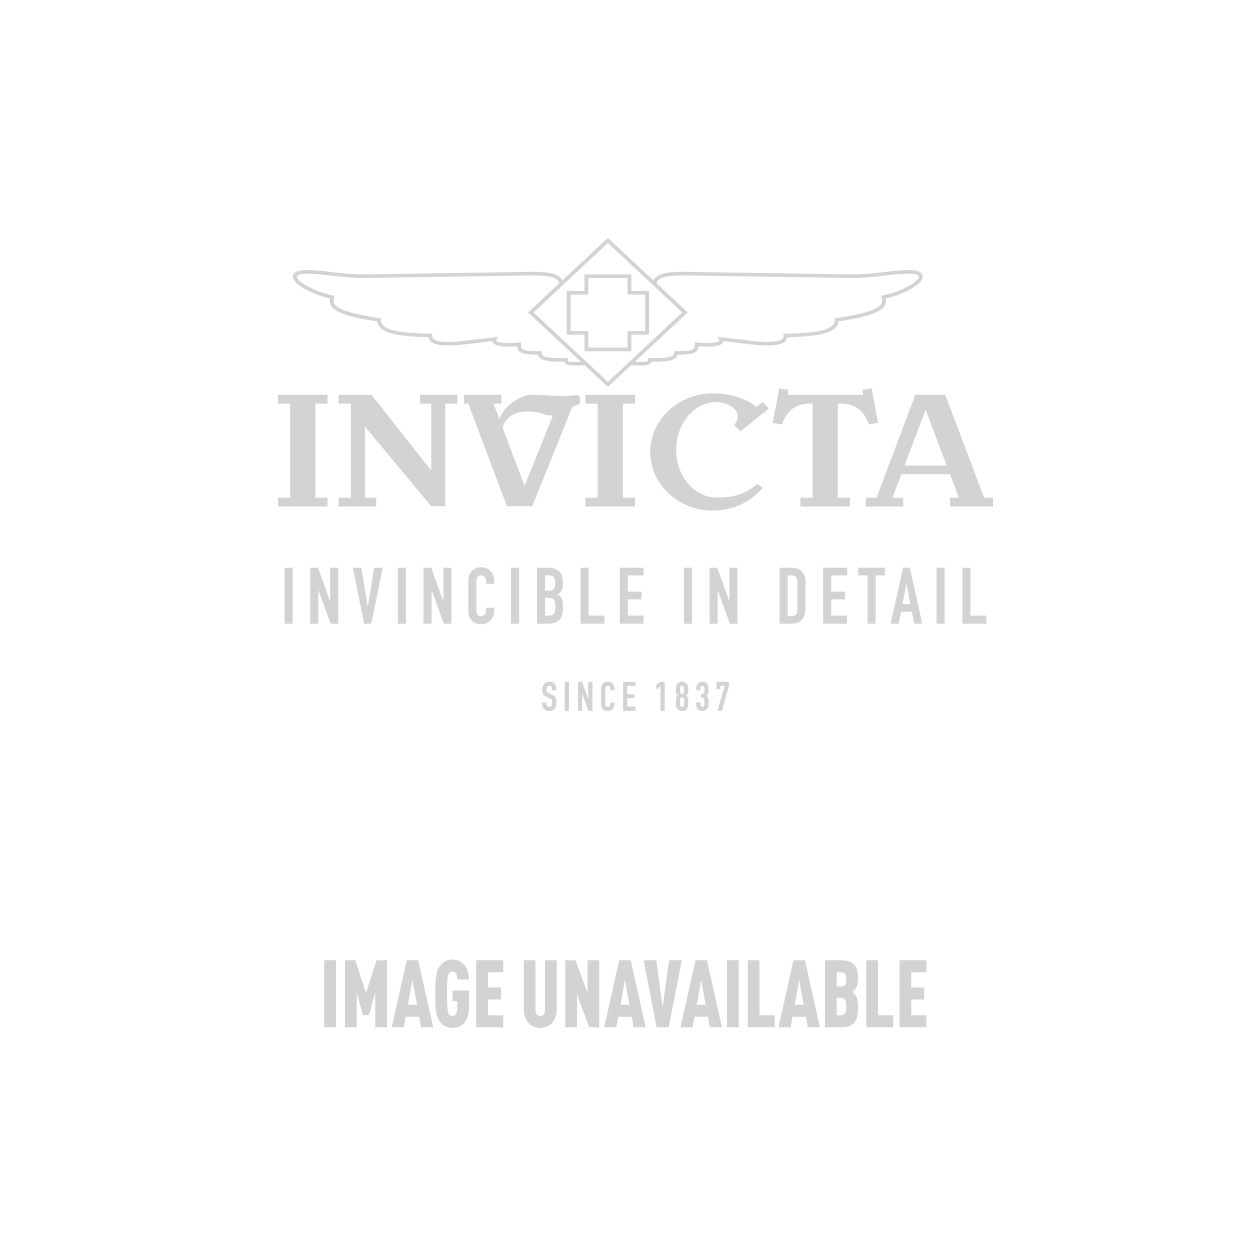 Invicta Venom Swiss Made Quartz Watch - Gold case with Gold tone Stainless Steel band - Model 17635